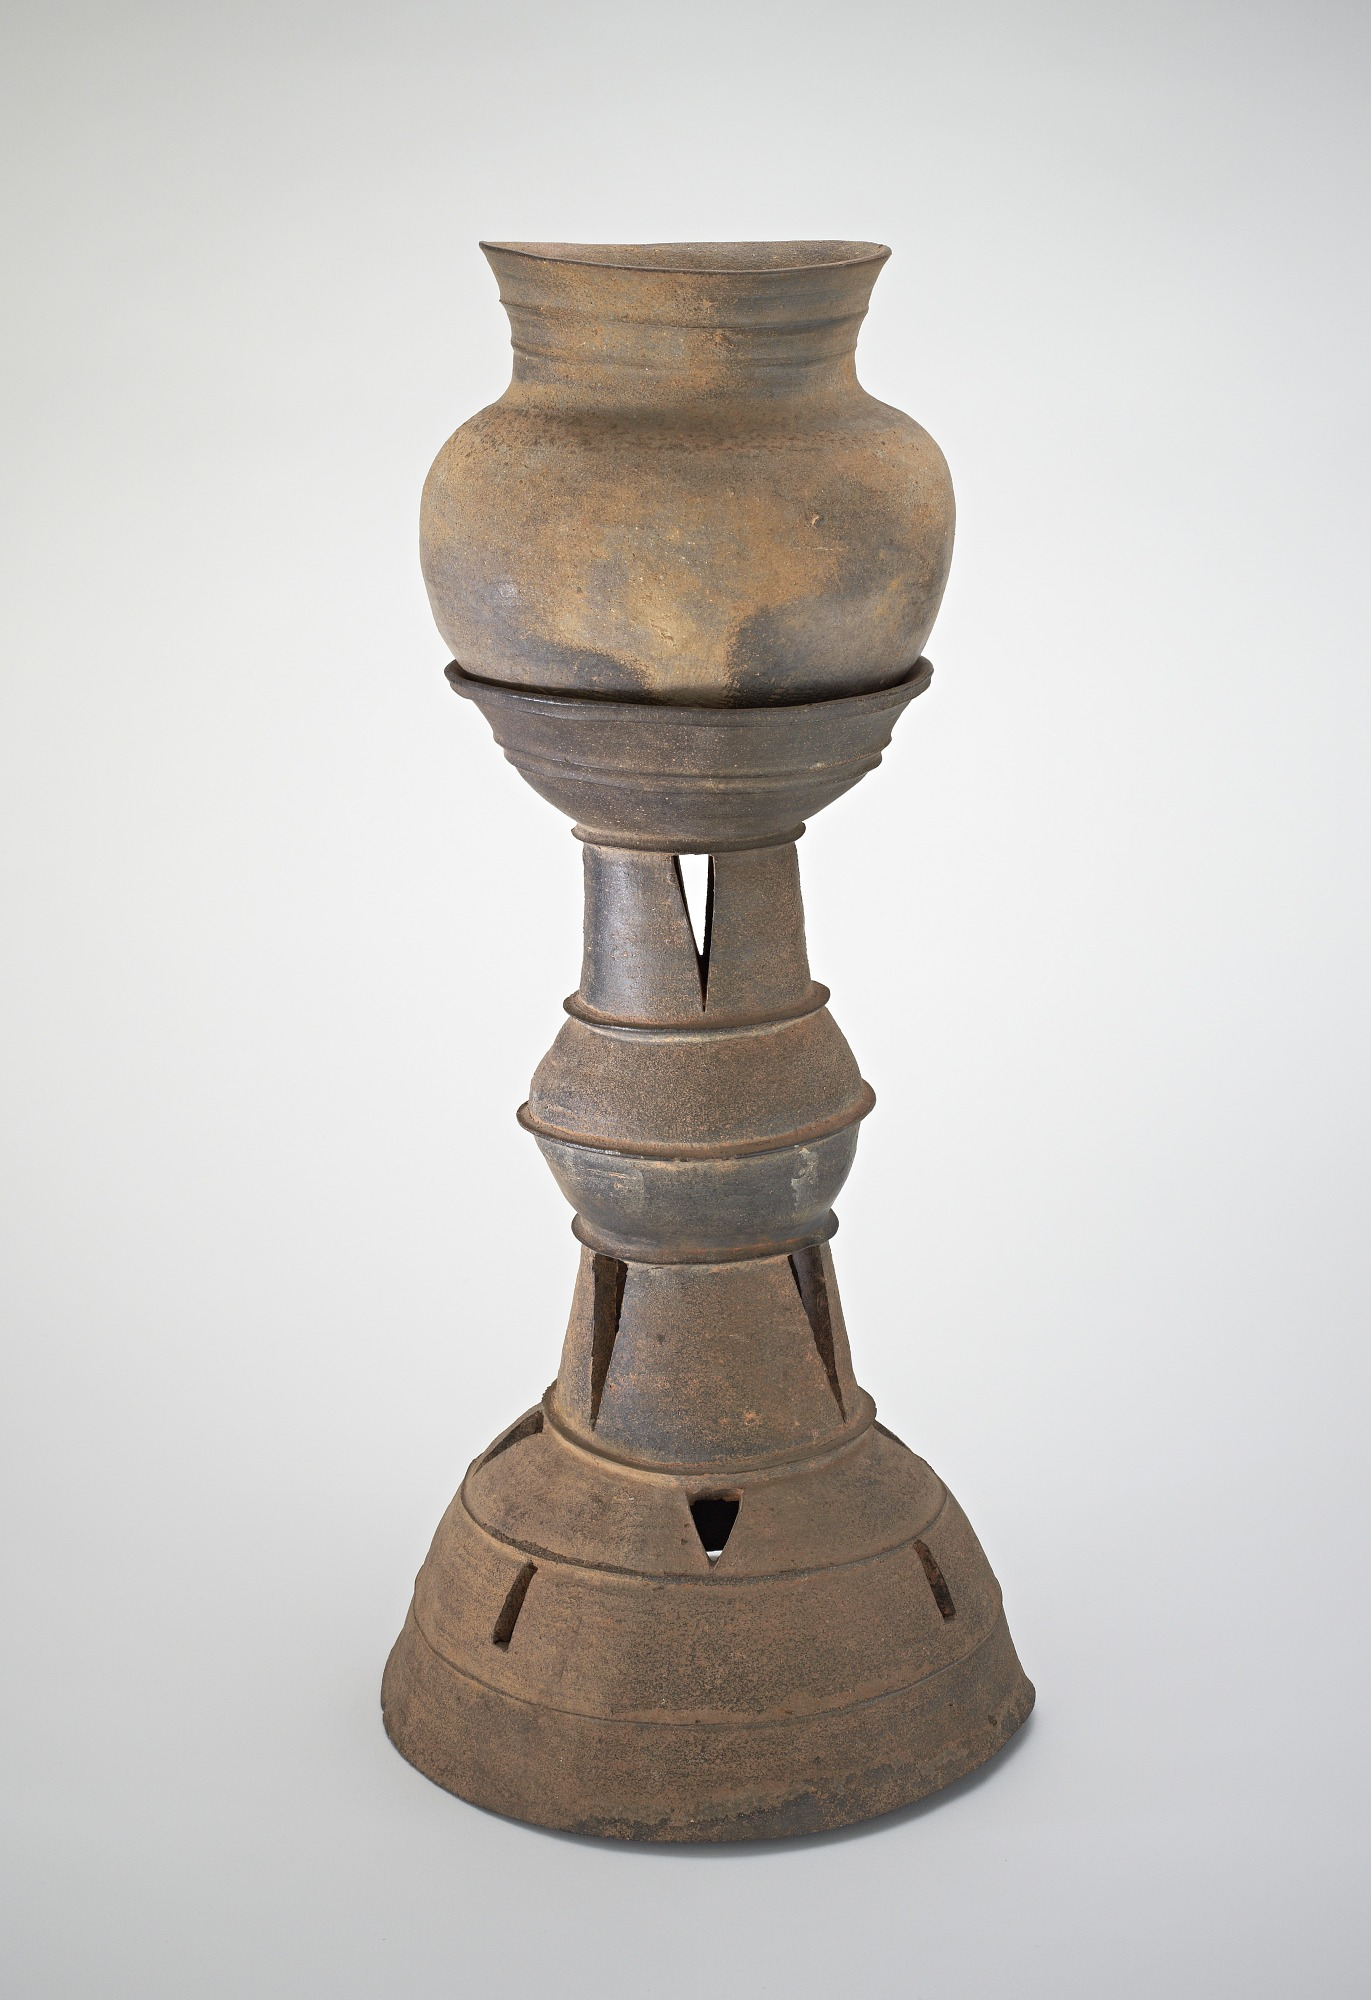 Funerary stand with round-bottomed jar, profile